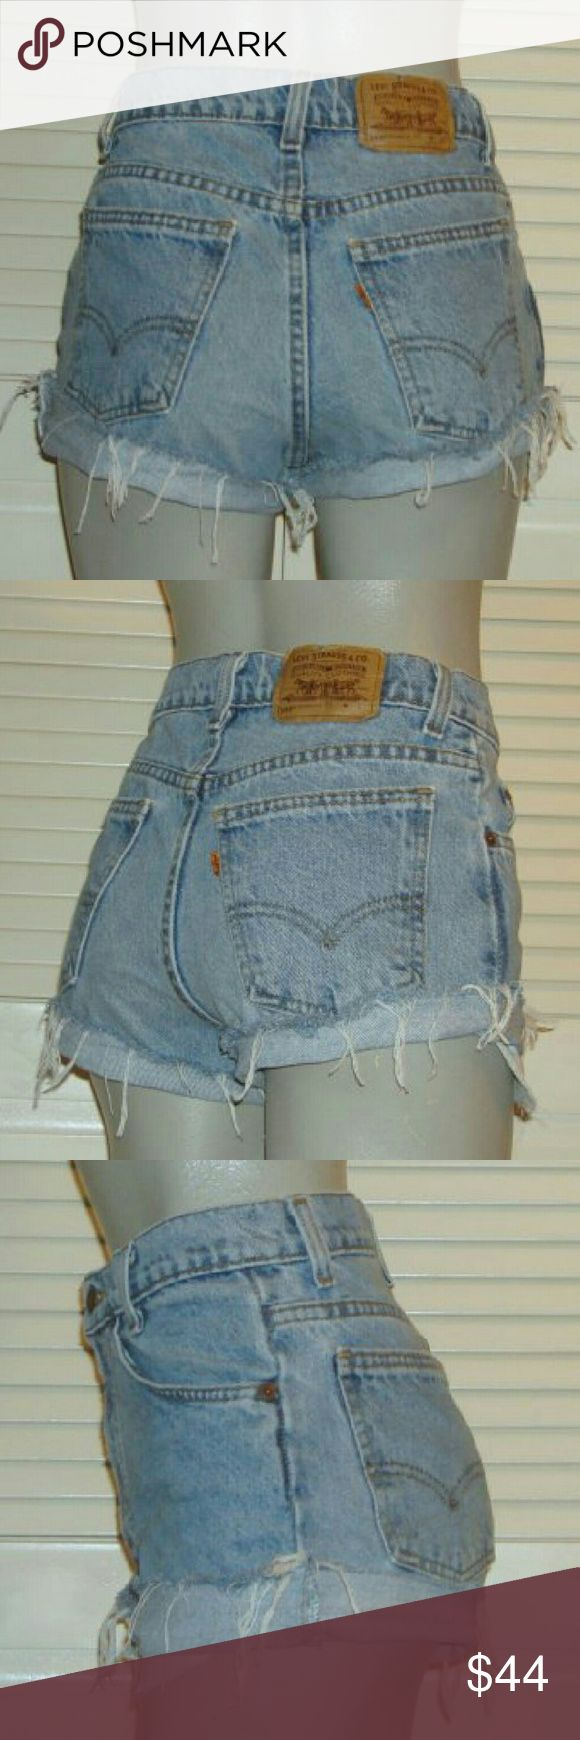 """Vintage Levis 550 Orange Tab High Waist Cut Offs This pair of Vintage Levi's 550 cut off blue jean shorts are 26"""" around the waist, 32"""" around the hips and have a 9 3/4"""" rise. Levi's Shorts Jean Shorts"""